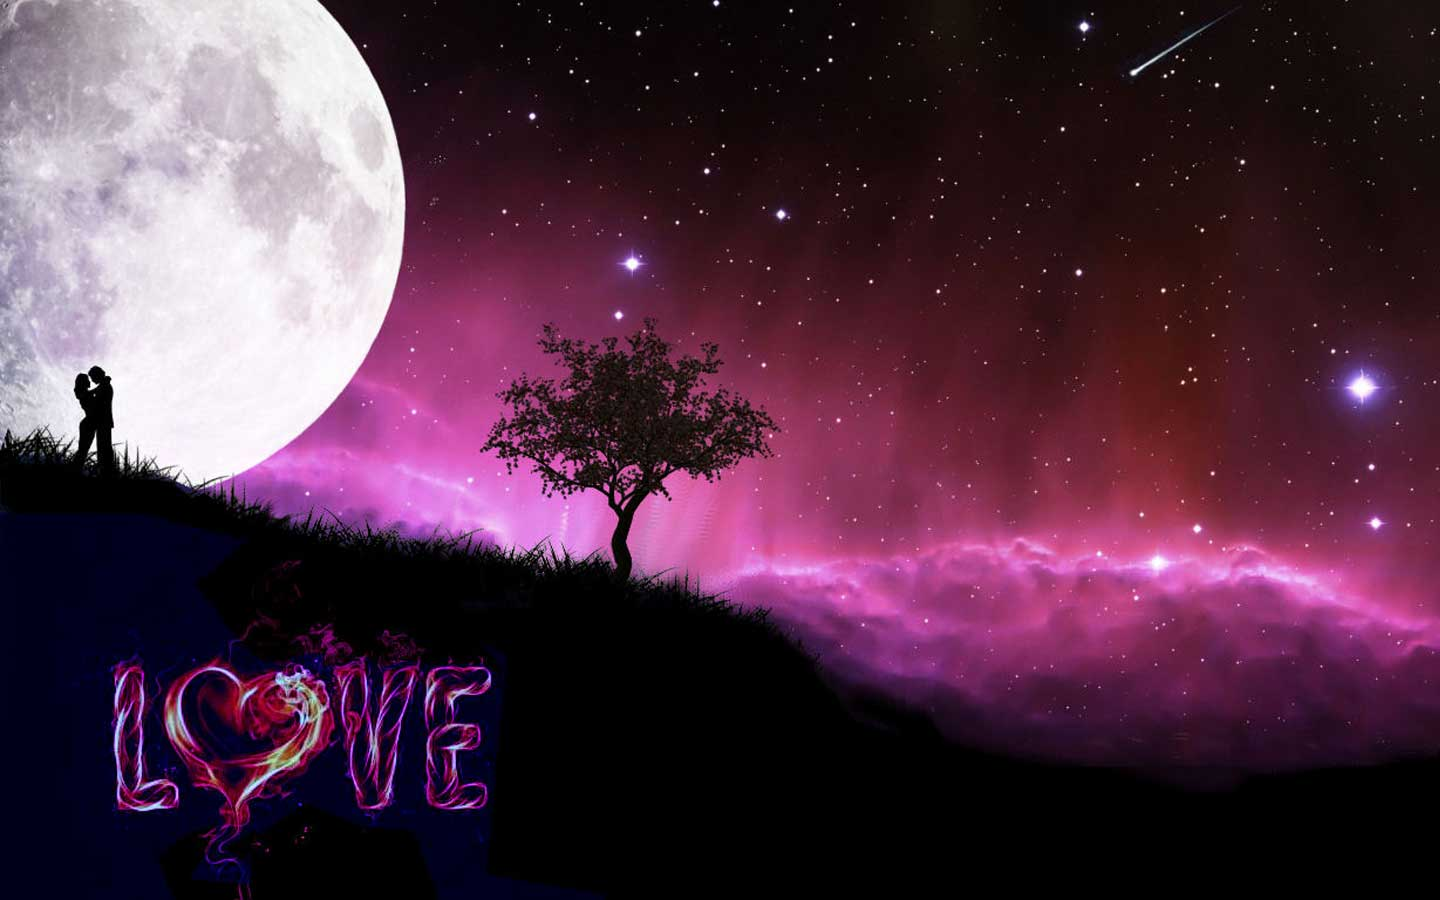 Love Wallpaper Nature : Love Nature Wallpapers - Wallpaper cave